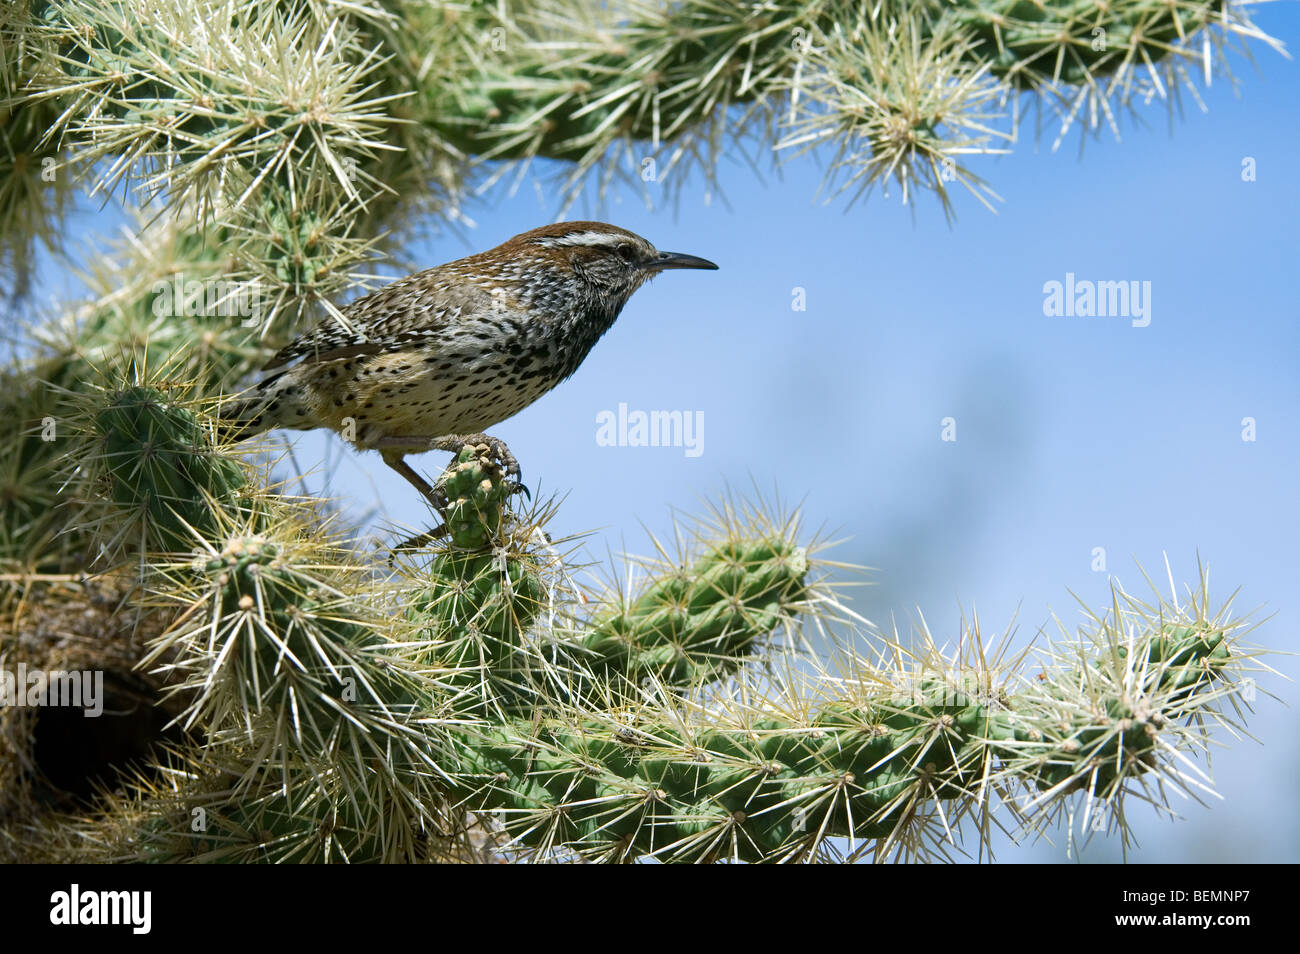 Cactus wren (Campylorhynchus brunneicapillus) at nest in Chain fruit / Jumping cholla in the Sonora desert, Arizona, - Stock Image